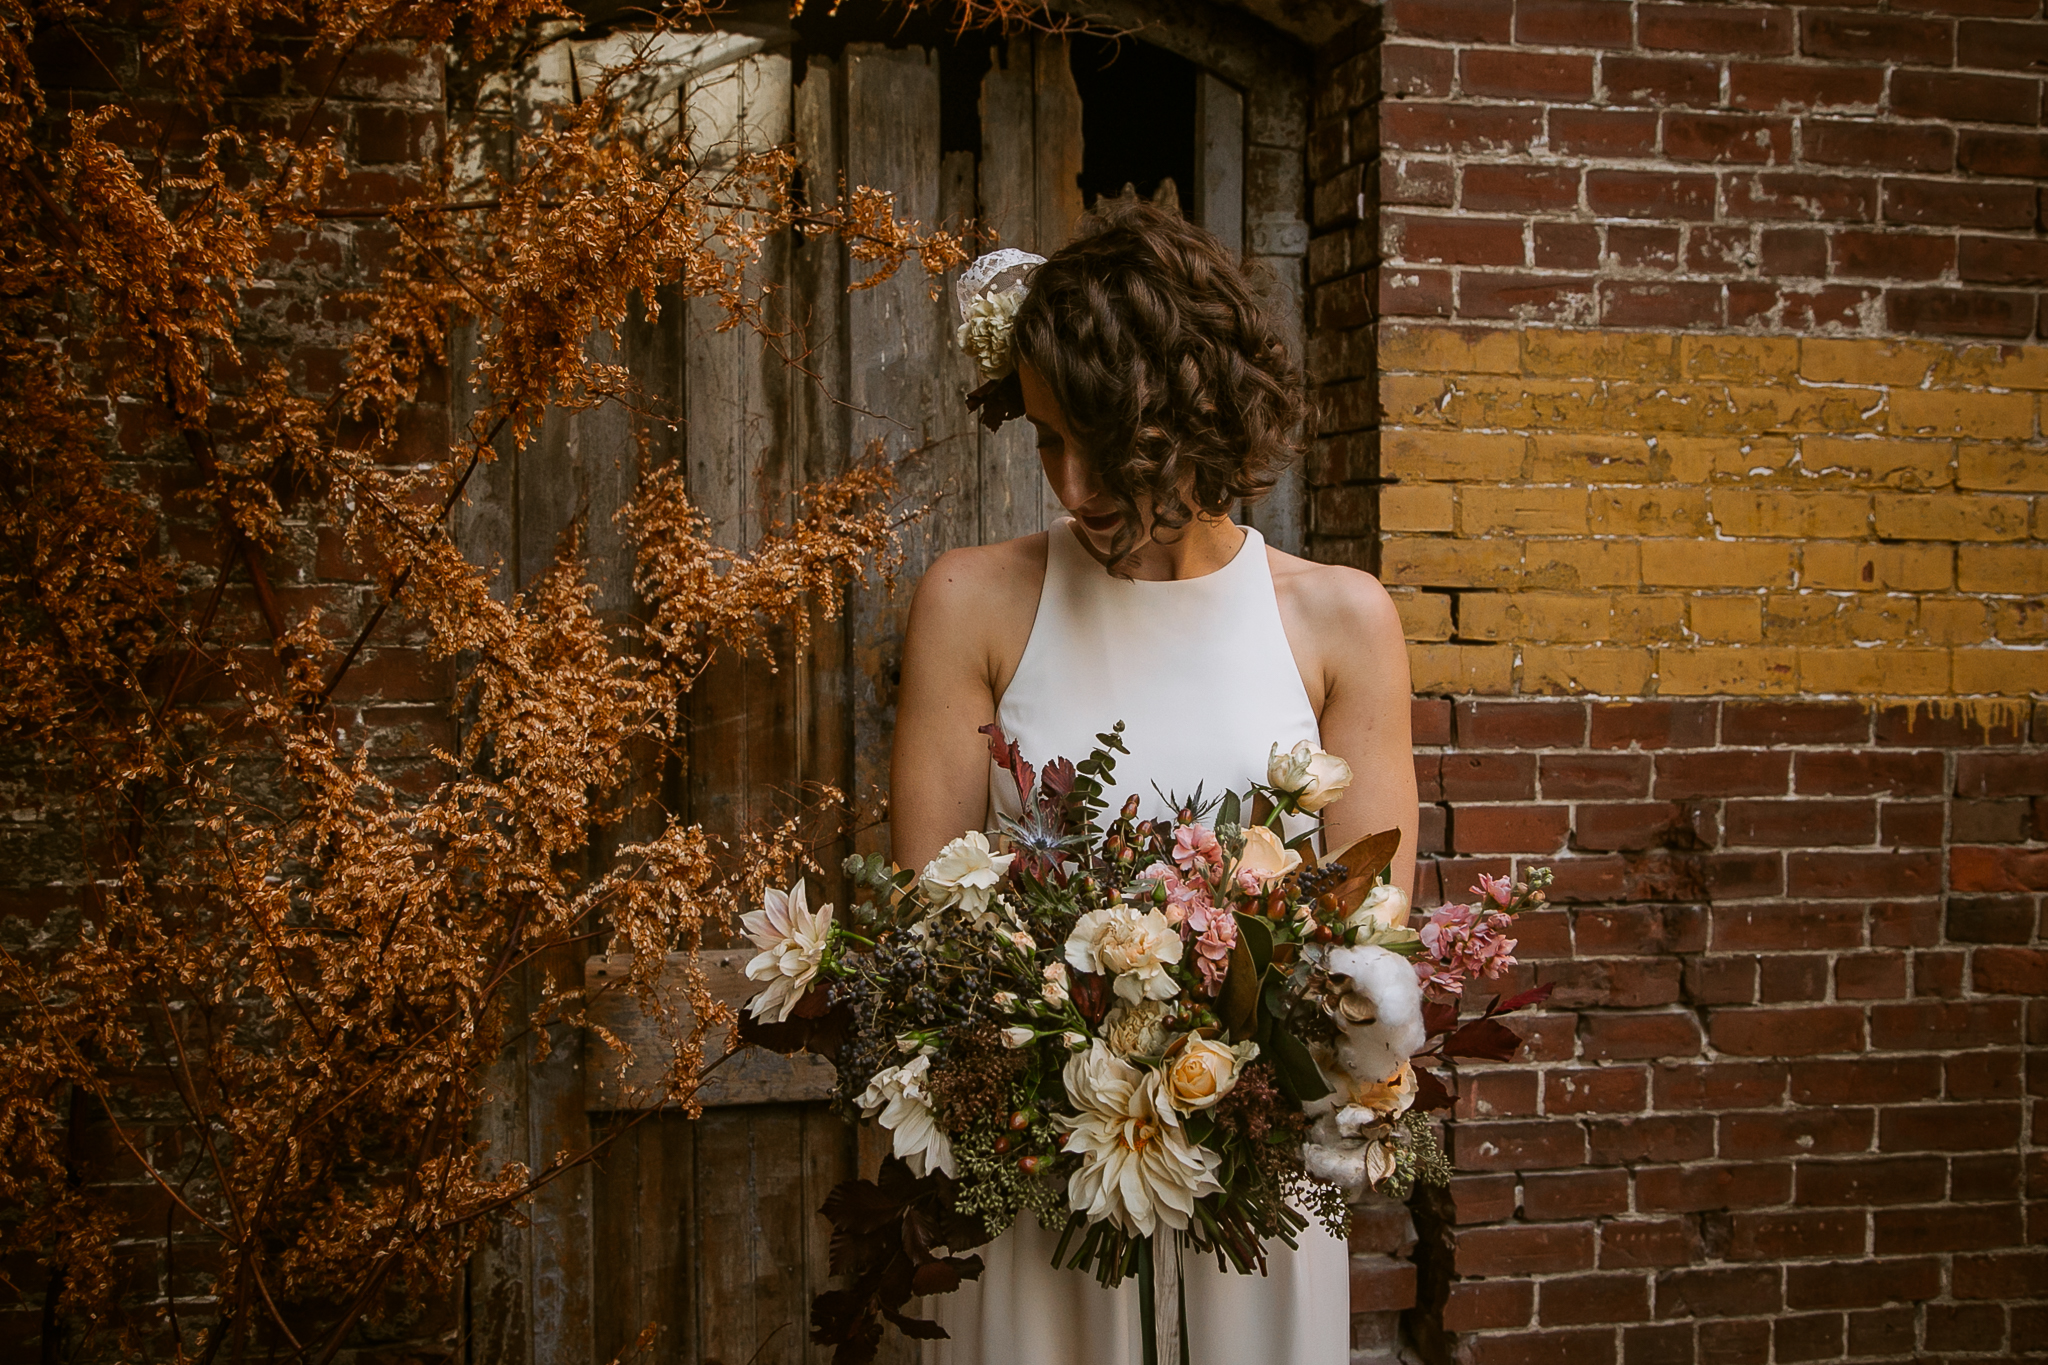 Watershed_Floral__inspiration_maine-16.jpg